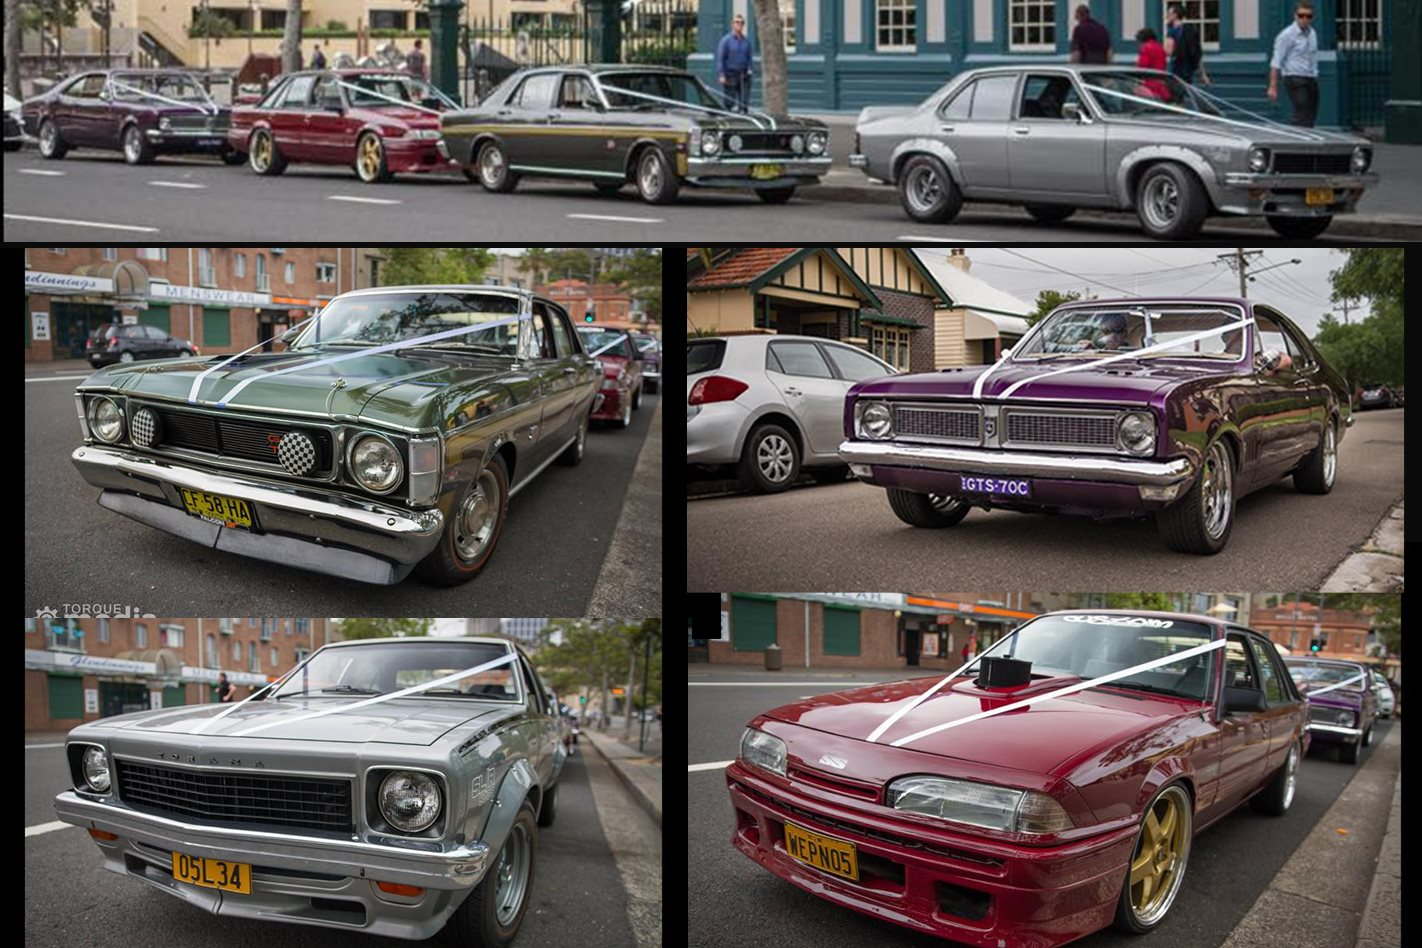 Evan Lloyd's wedding cars